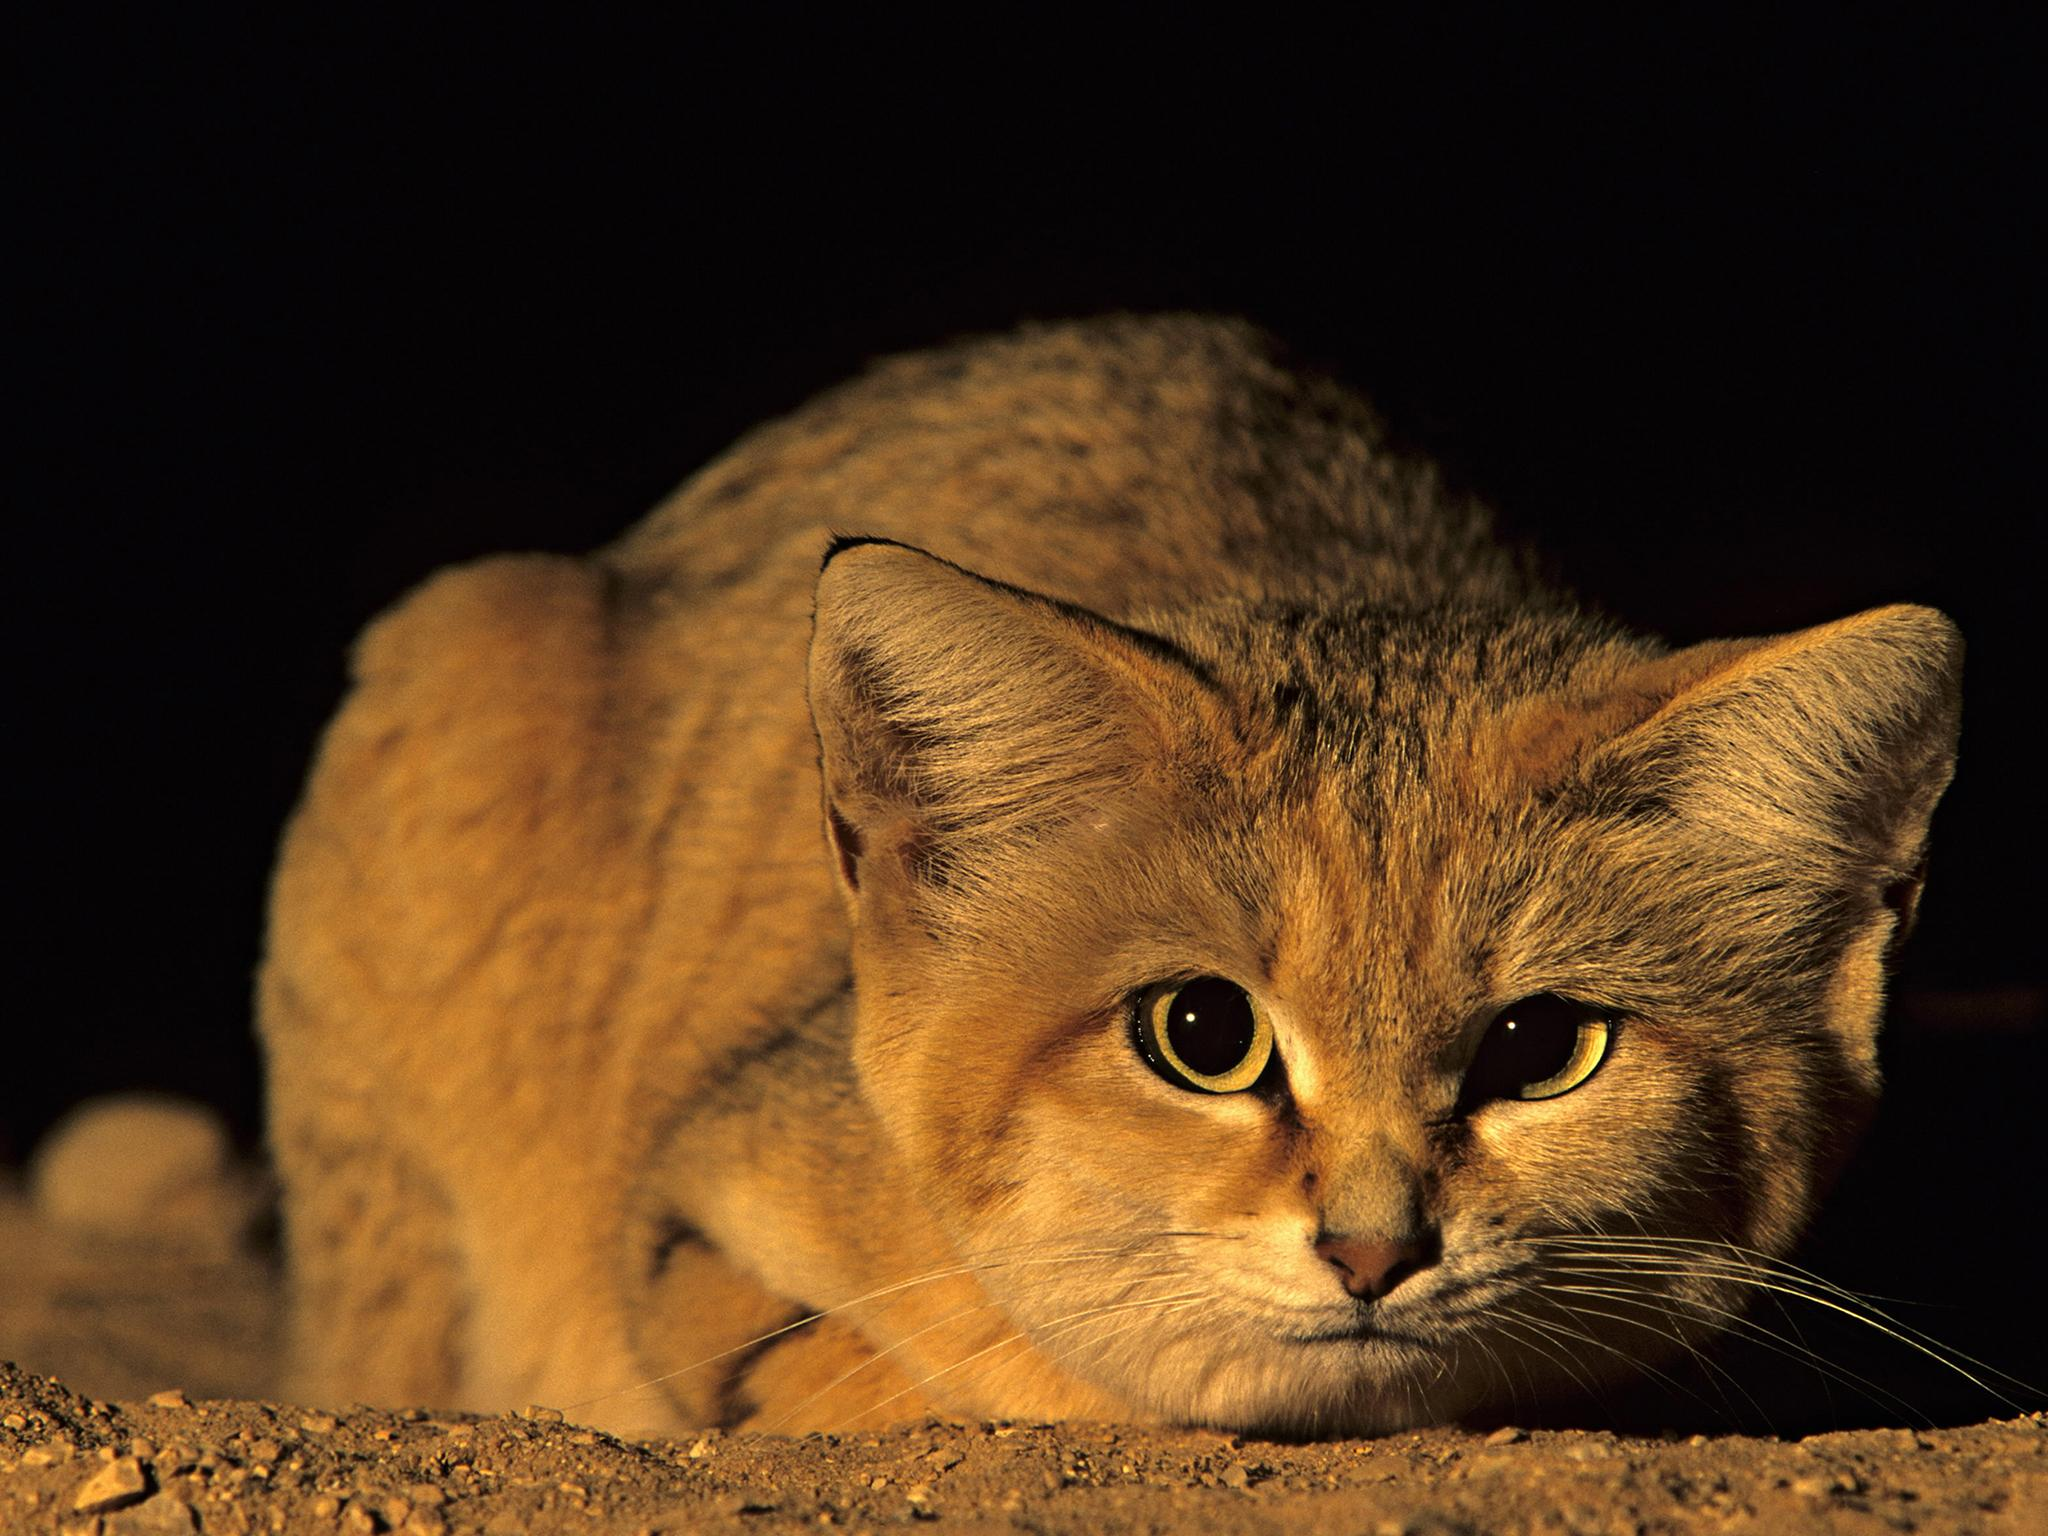 Never Seen Rare Arabian Sand Cat Spotted By Scientists After Ten Year Search Mediamax Rare Arabian Sand Cat Spotted By Scientists After Ten Year Search